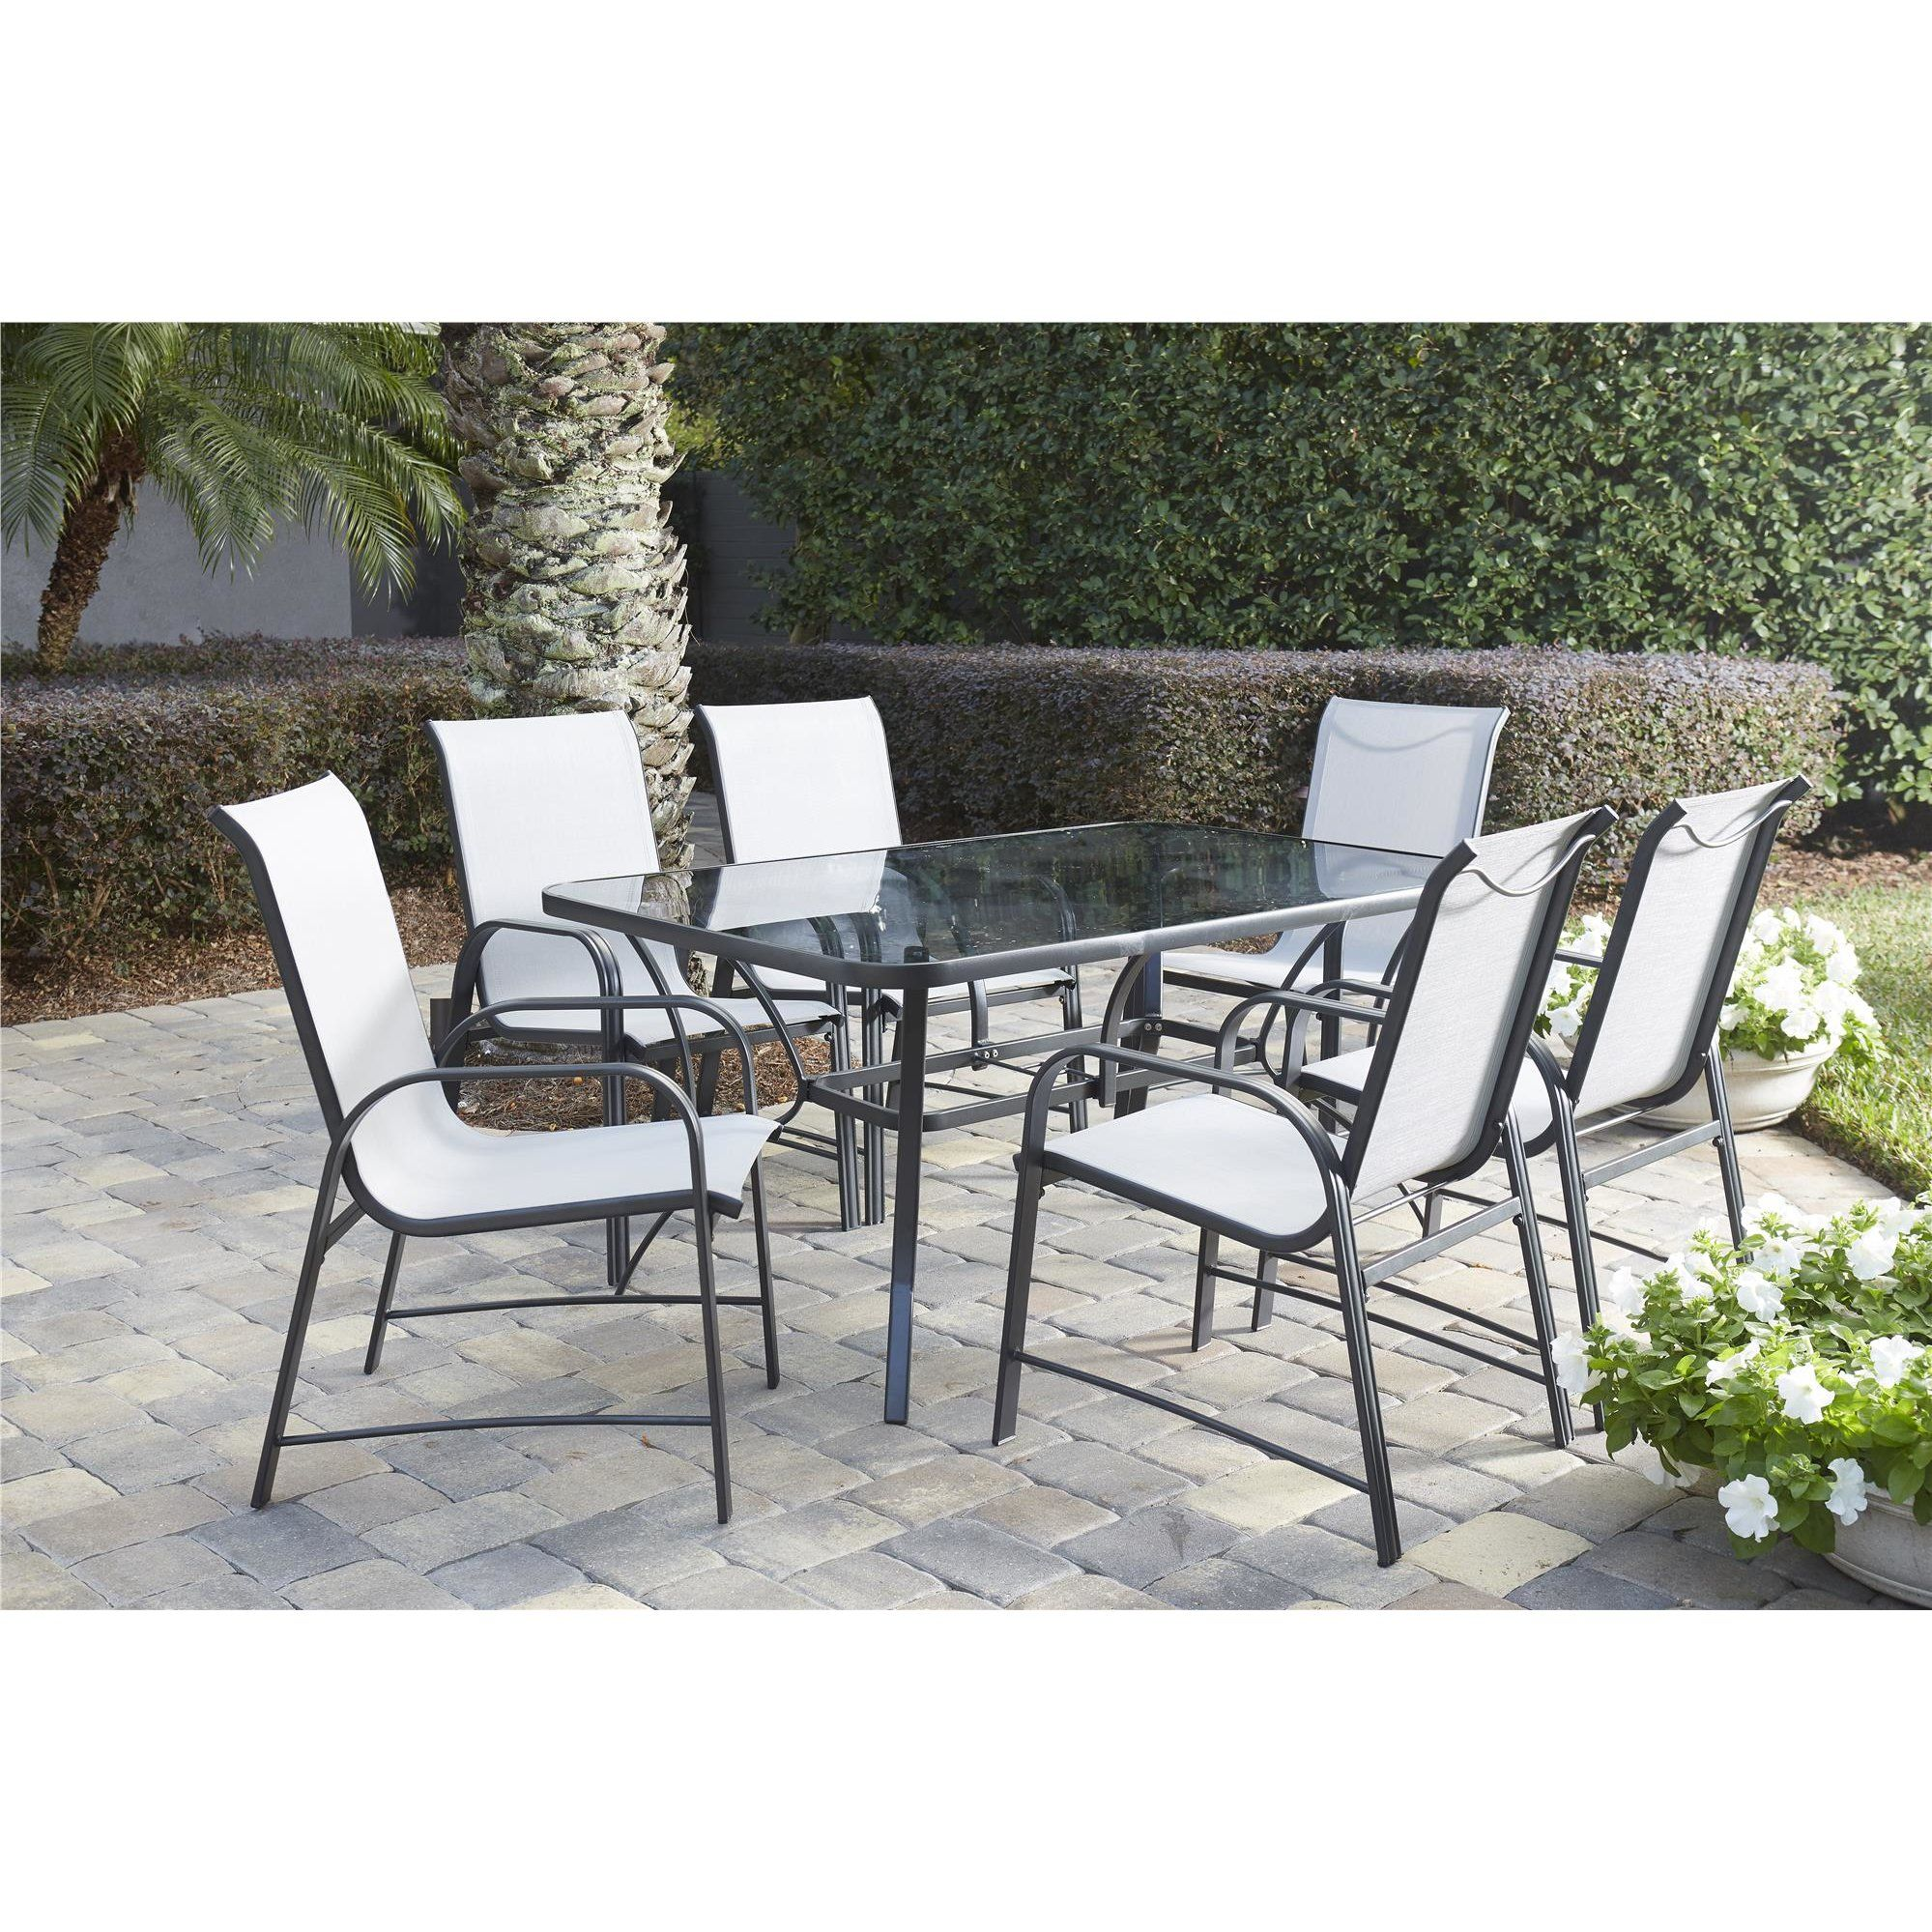 Bellbrook 7 Piece Patio Dining Set Home Pinterest